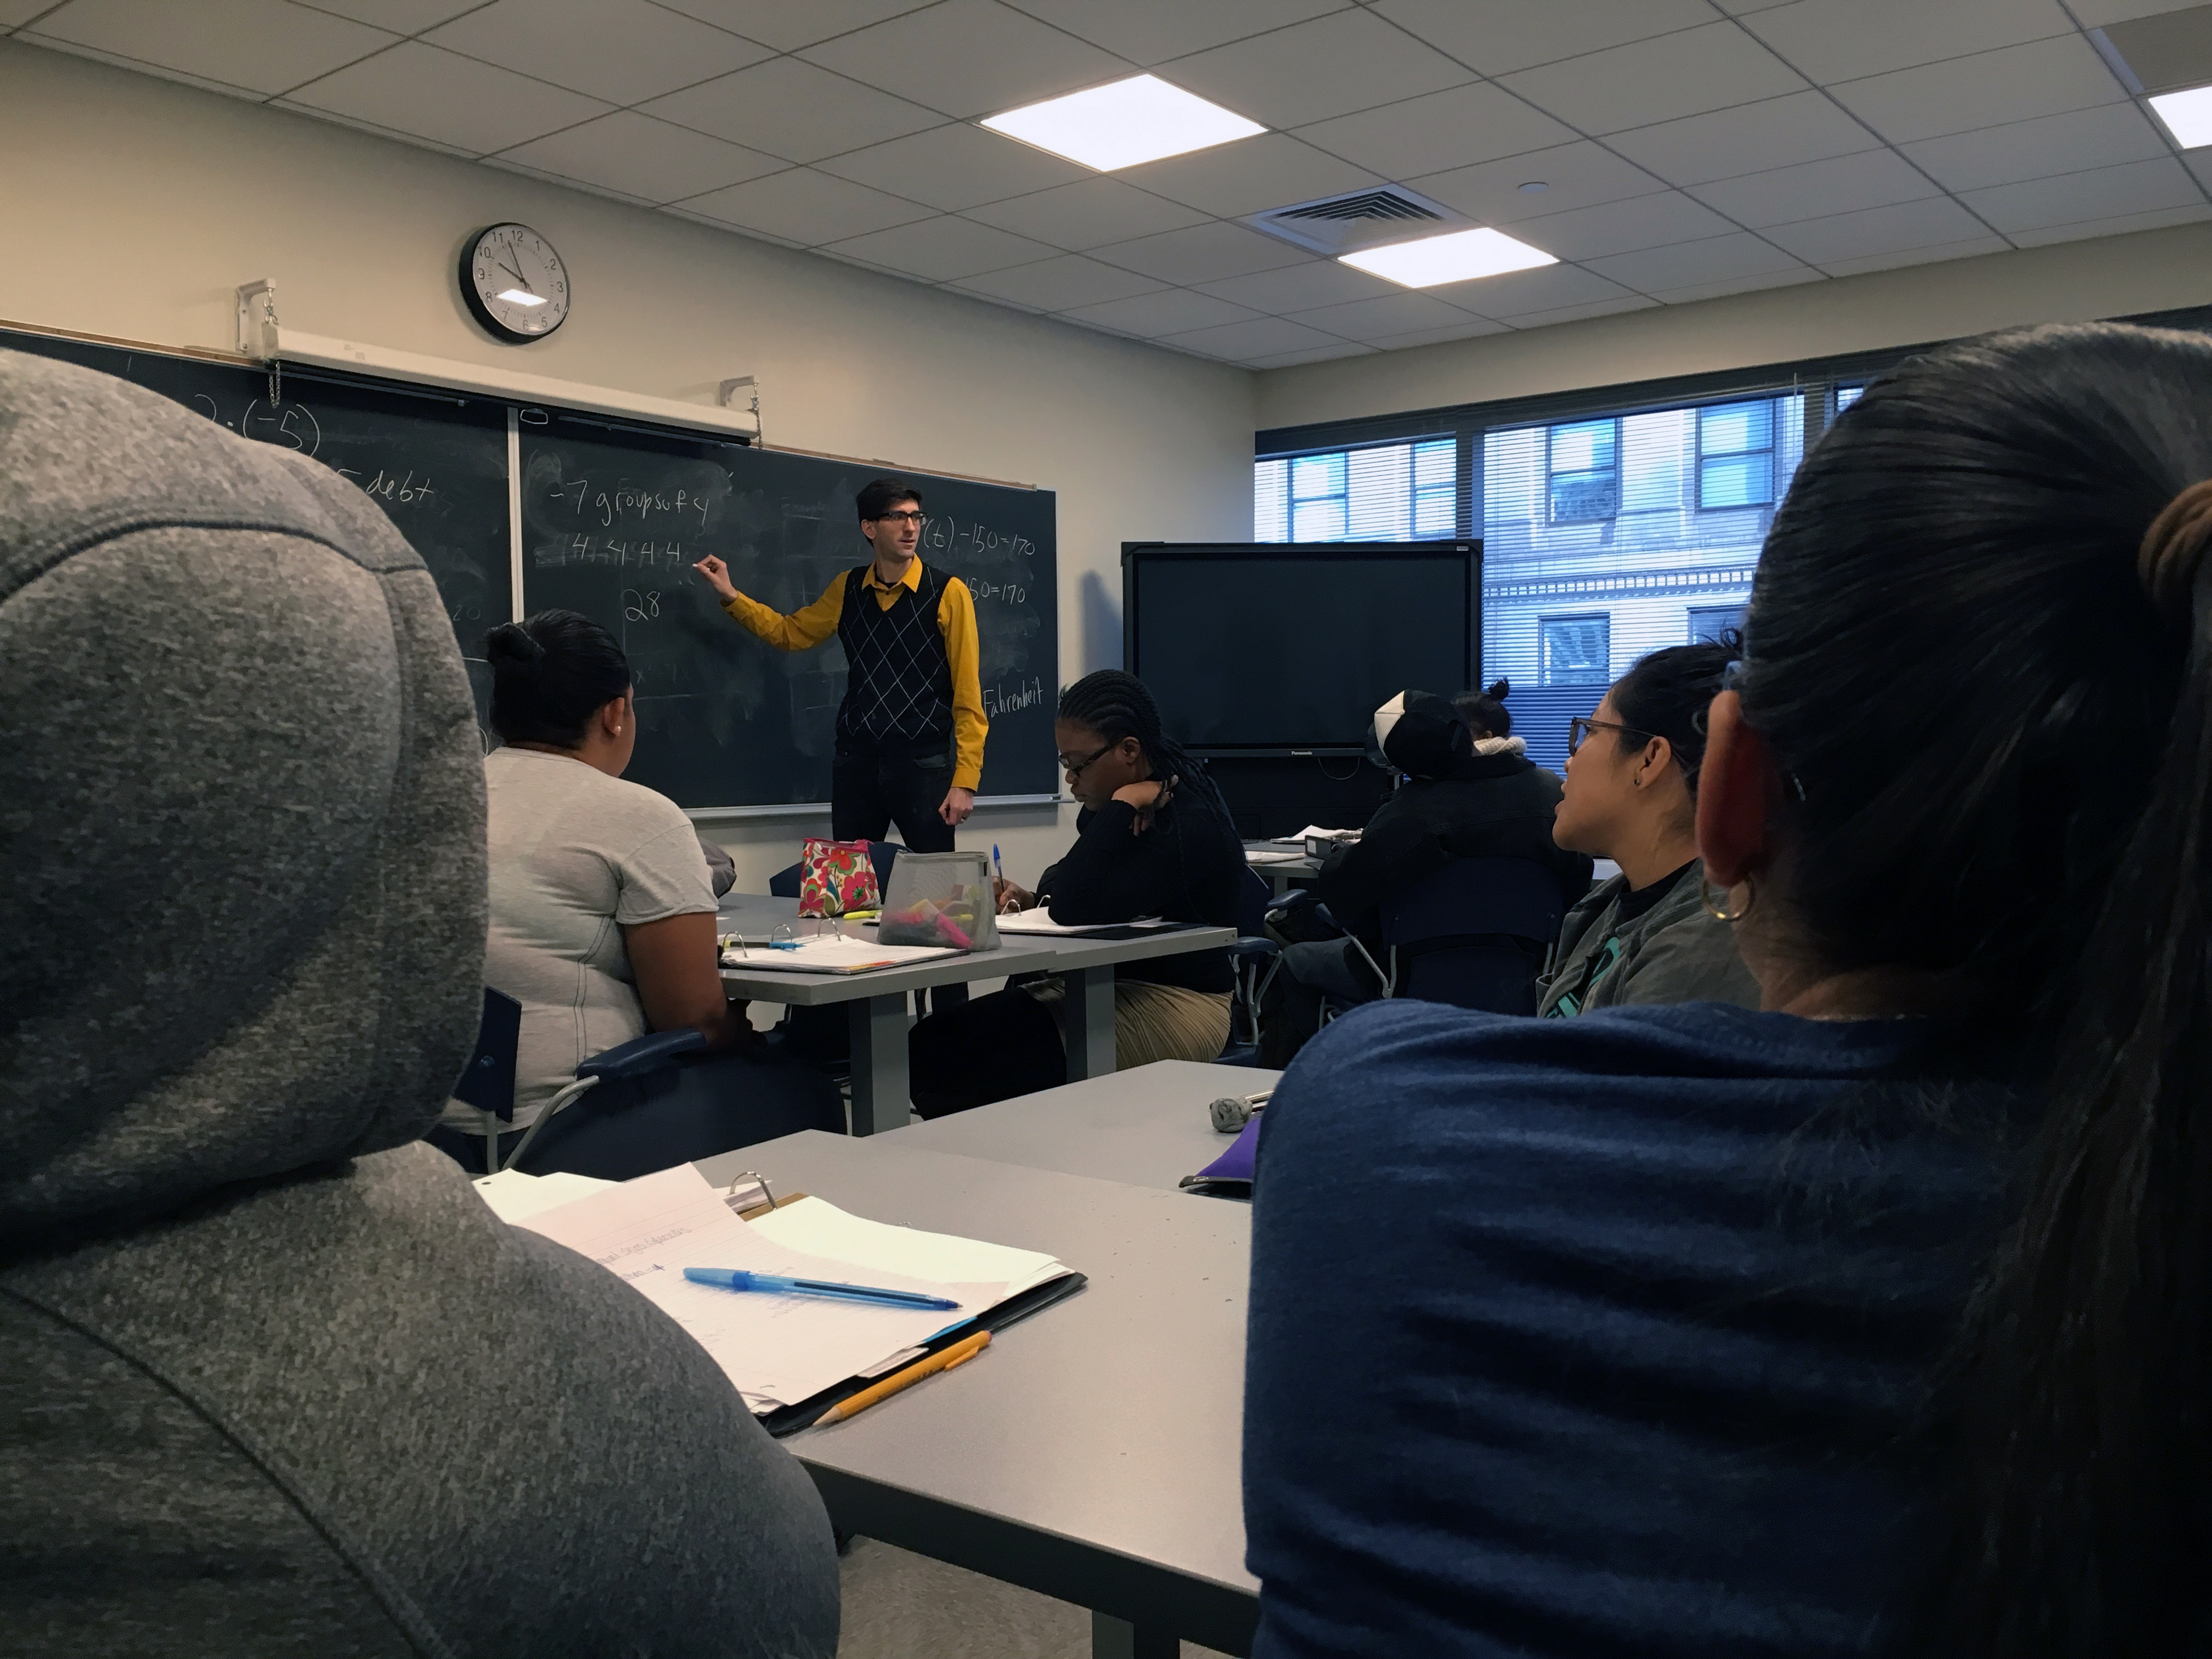 High number of students failing college math spurs overhaul